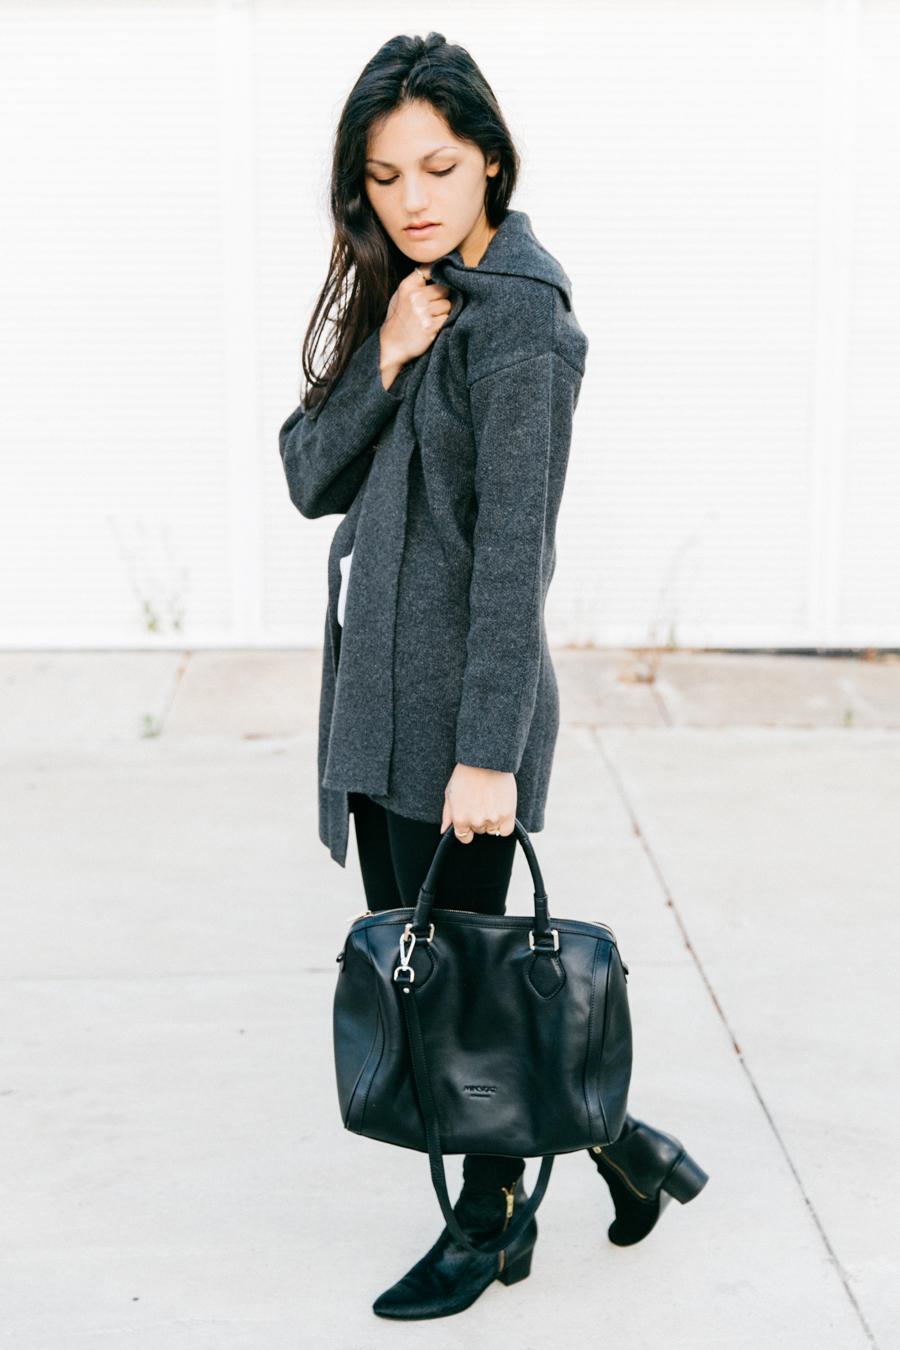 Grey coat with treggings & boots outfit.